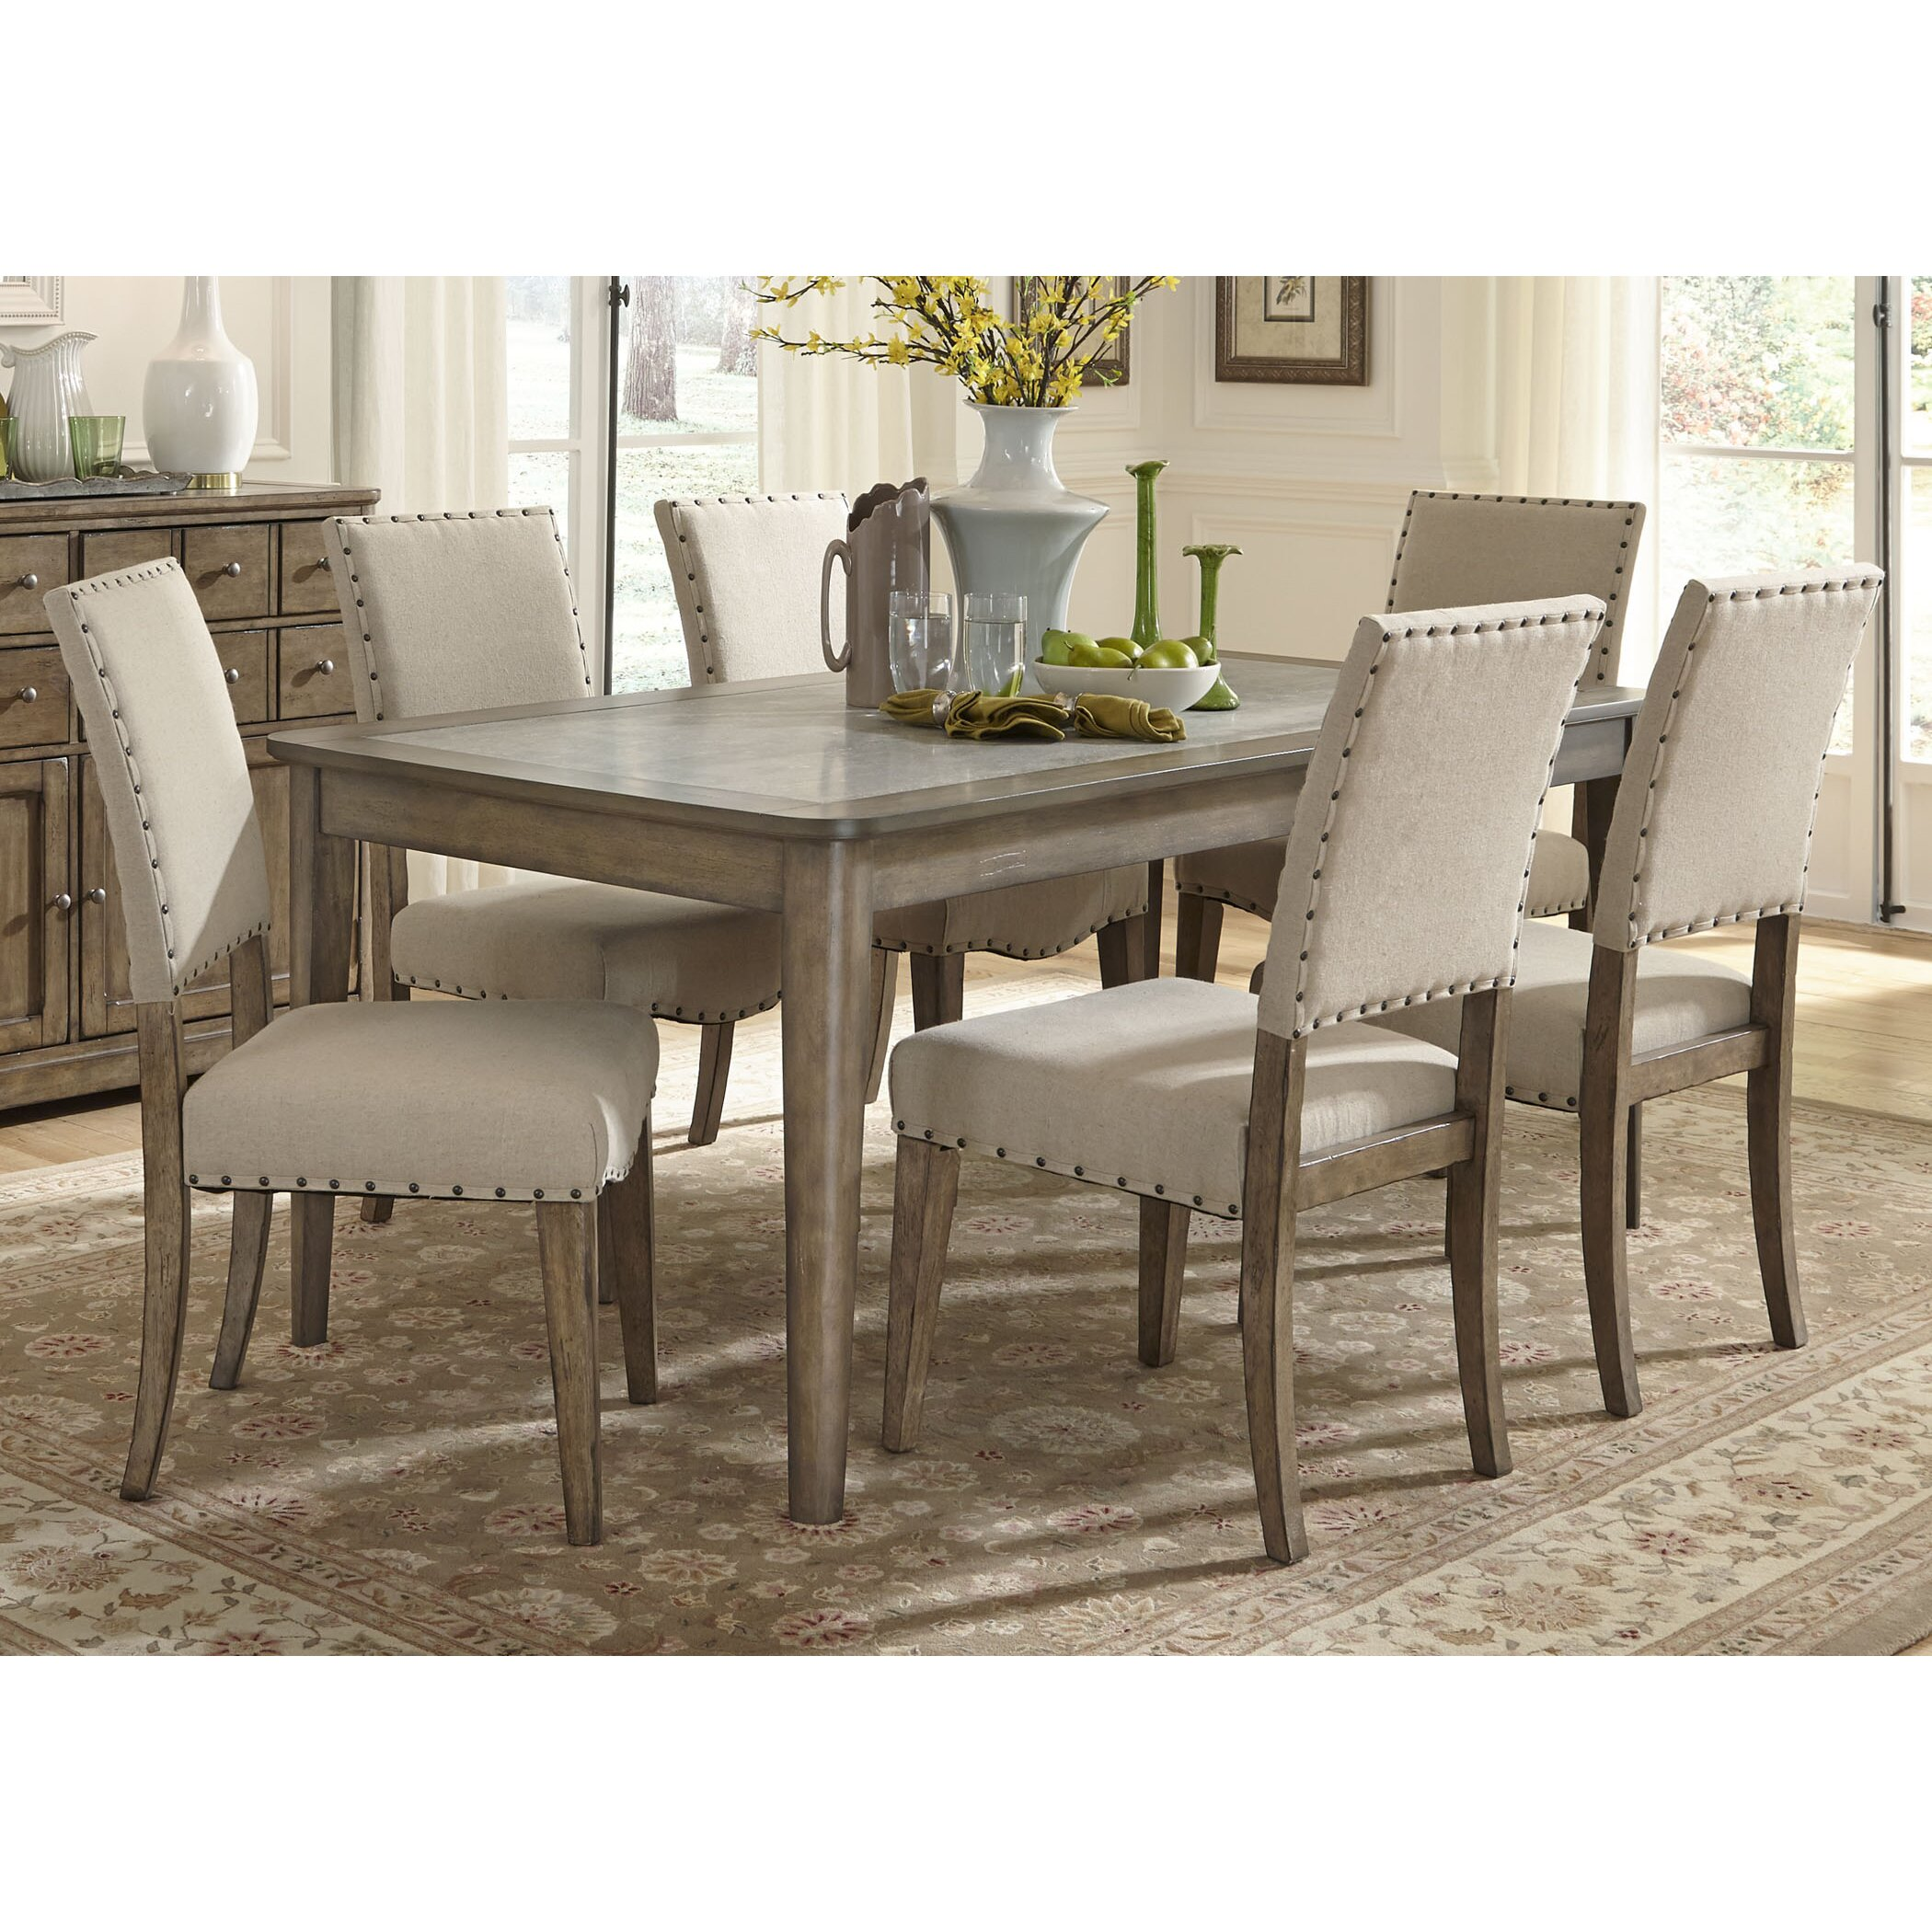 Liberty furniture 7 piece dining set reviews wayfair for 7 piece dining set with bench